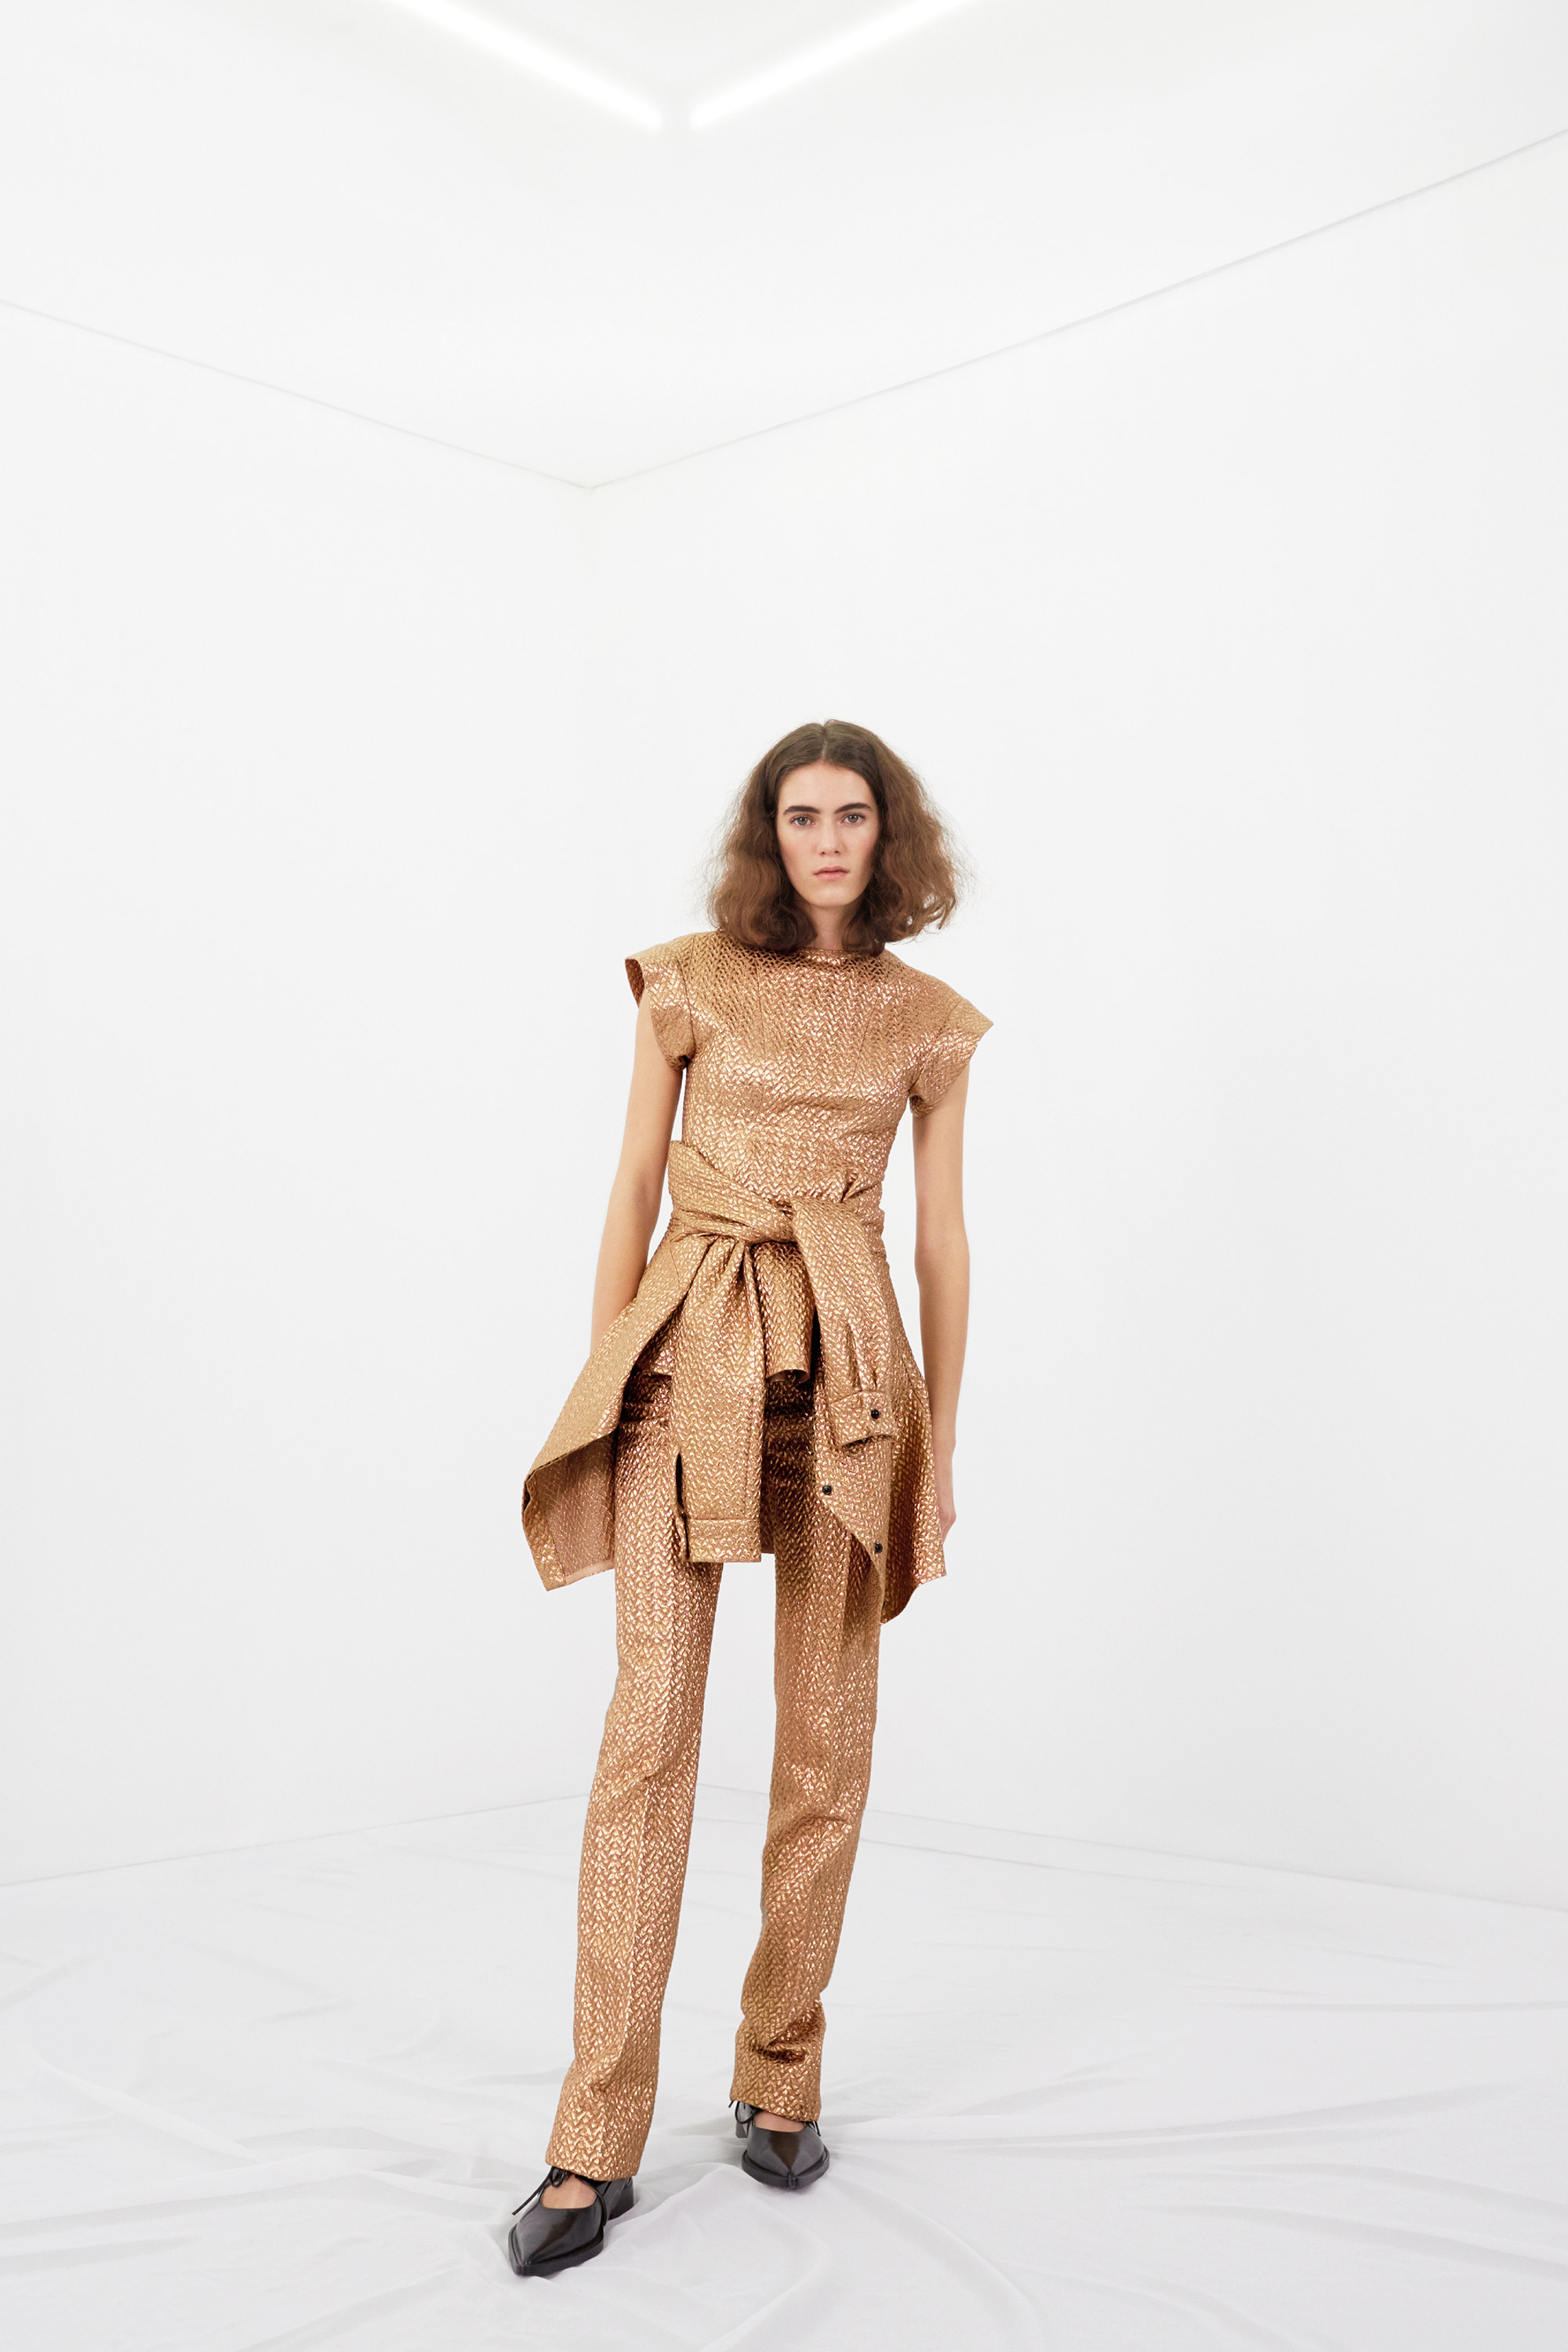 victoria-beckham-pre-fall-2016-lookbook-16.jpg